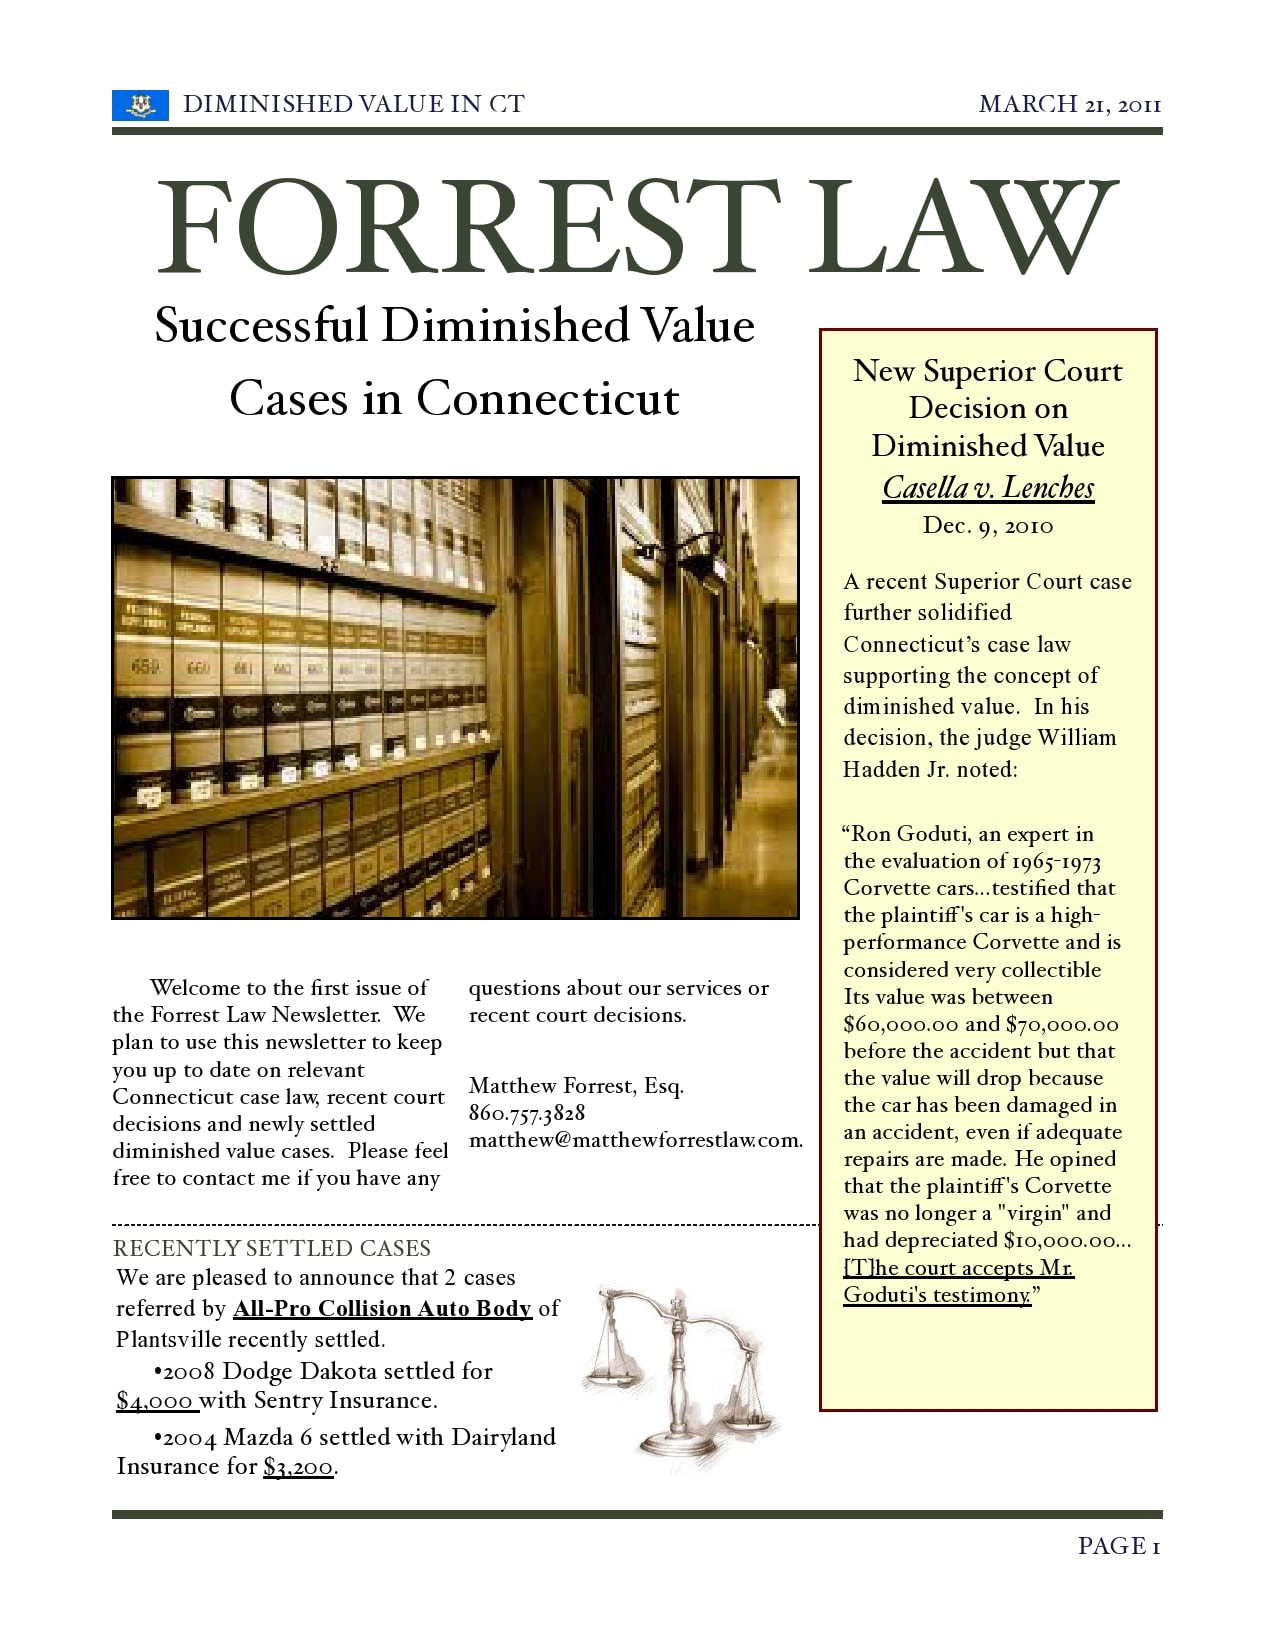 Forrest Law Newsletter about Connecticut Diminished Value Law and some Settled DV Cases.